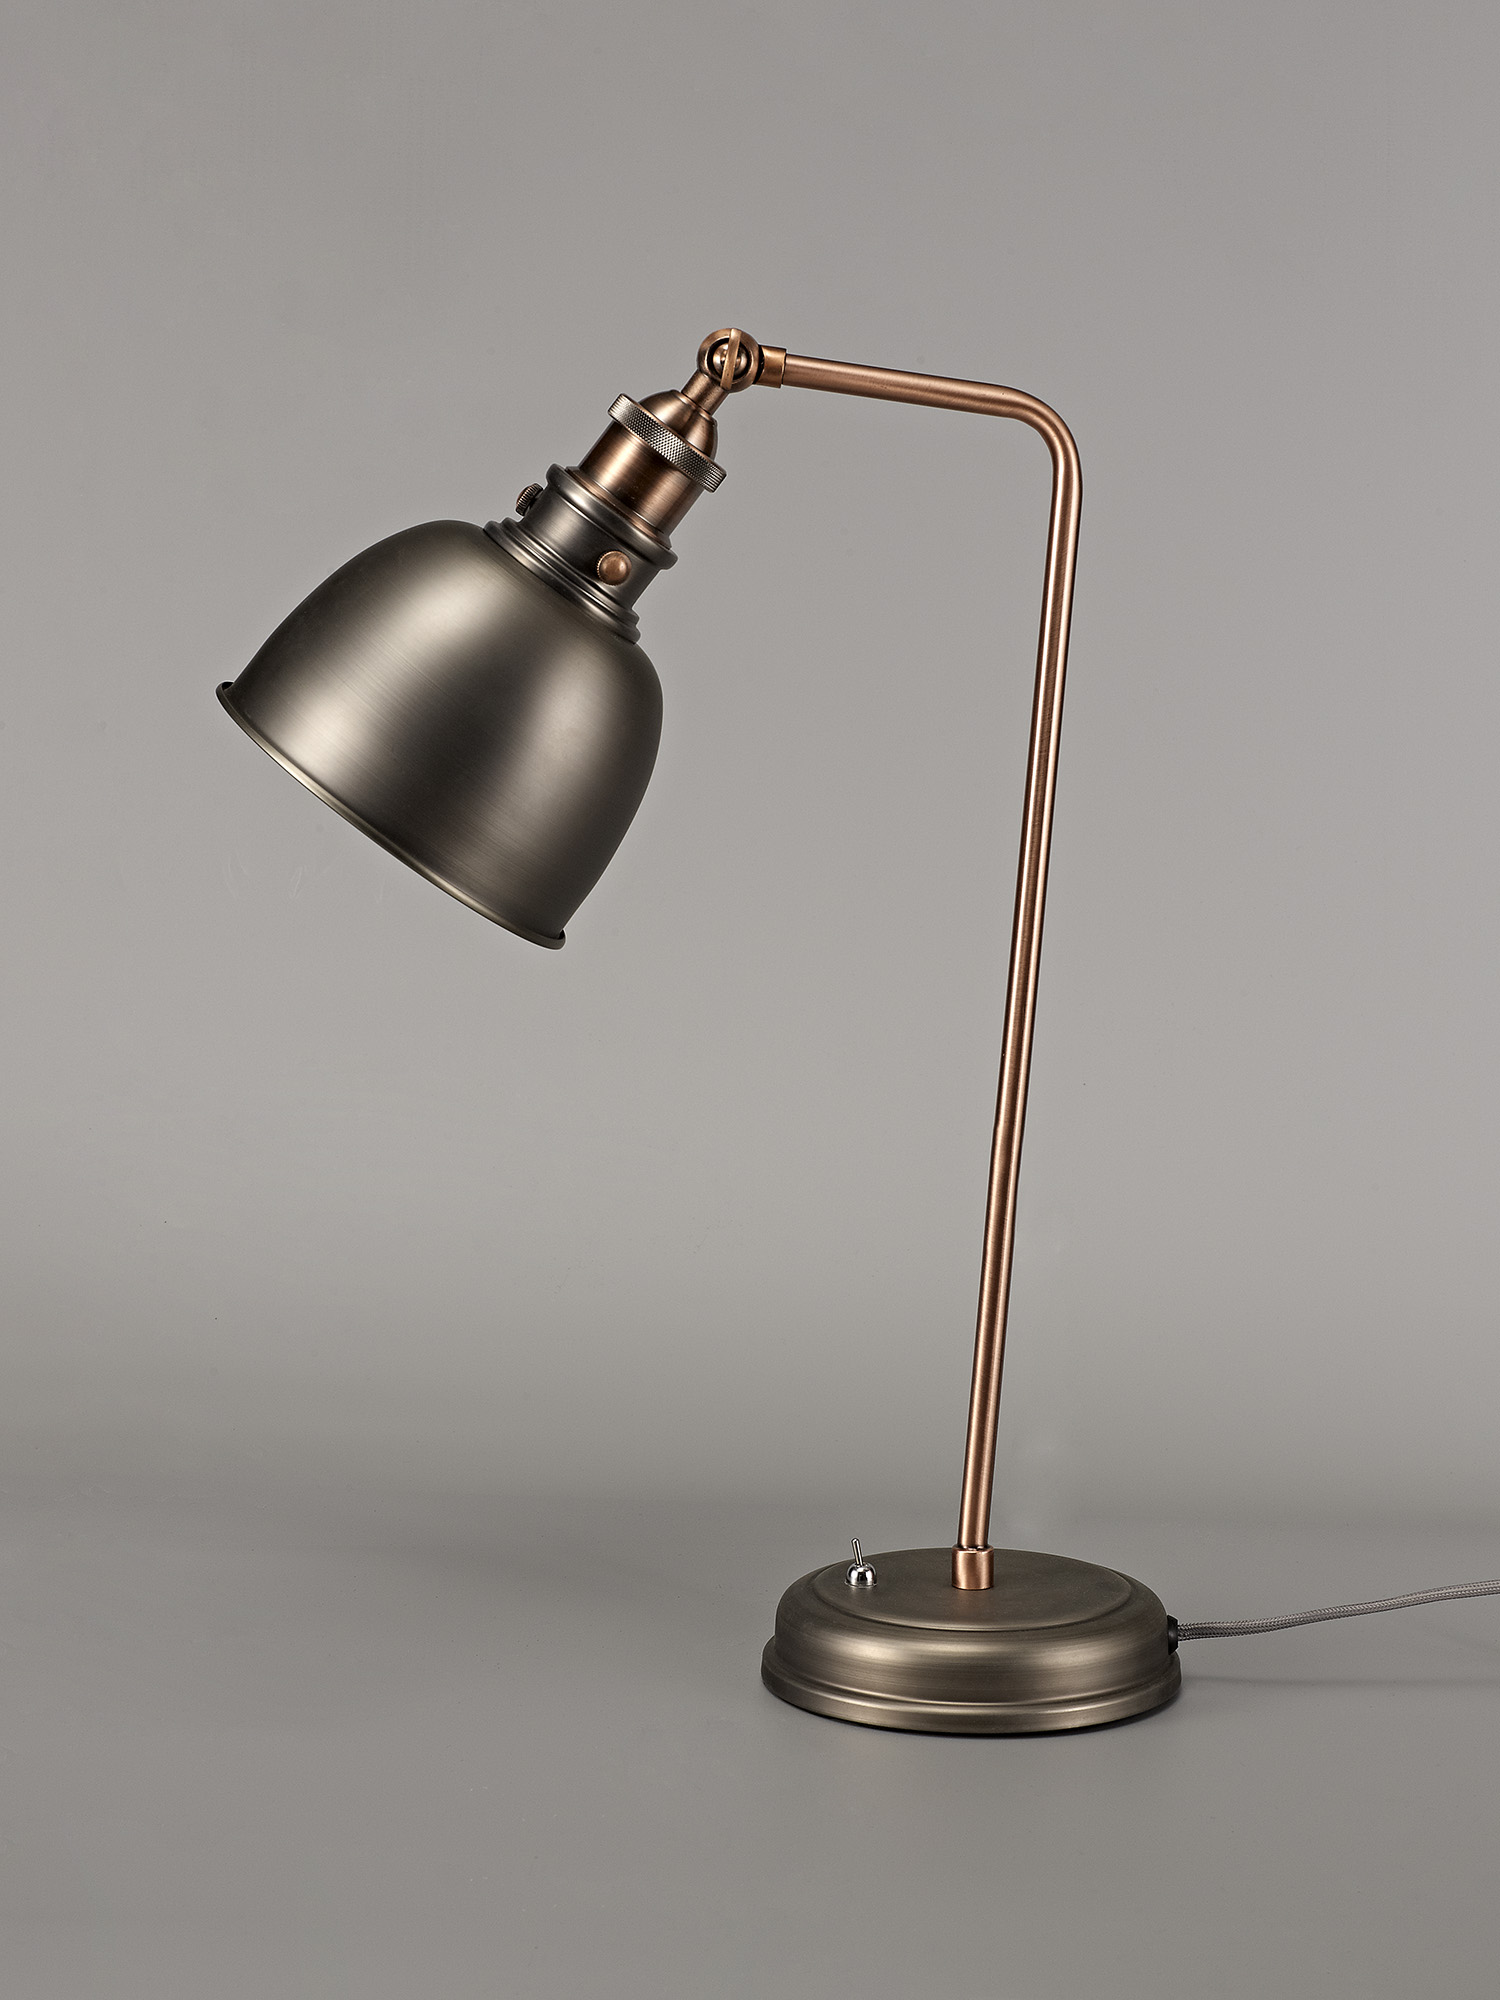 Adjustable Table Lamp, 1 x E27, Antique Silver/Copper/White